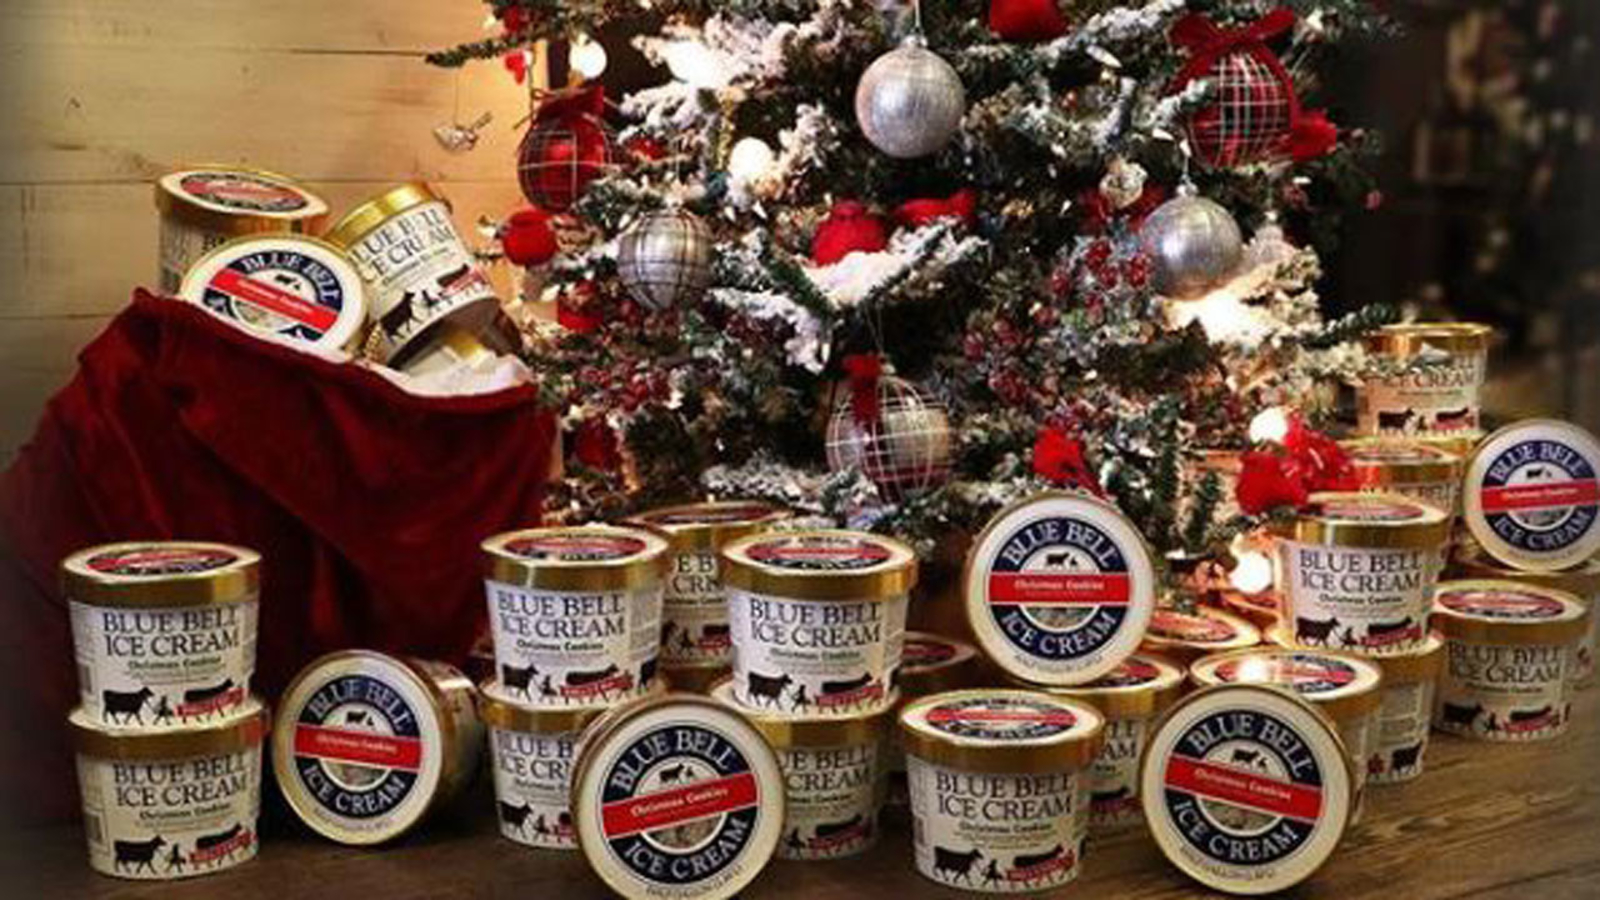 Blue Bell releases Christmas Cookies ice cream for the holidays - ABC13 Houston